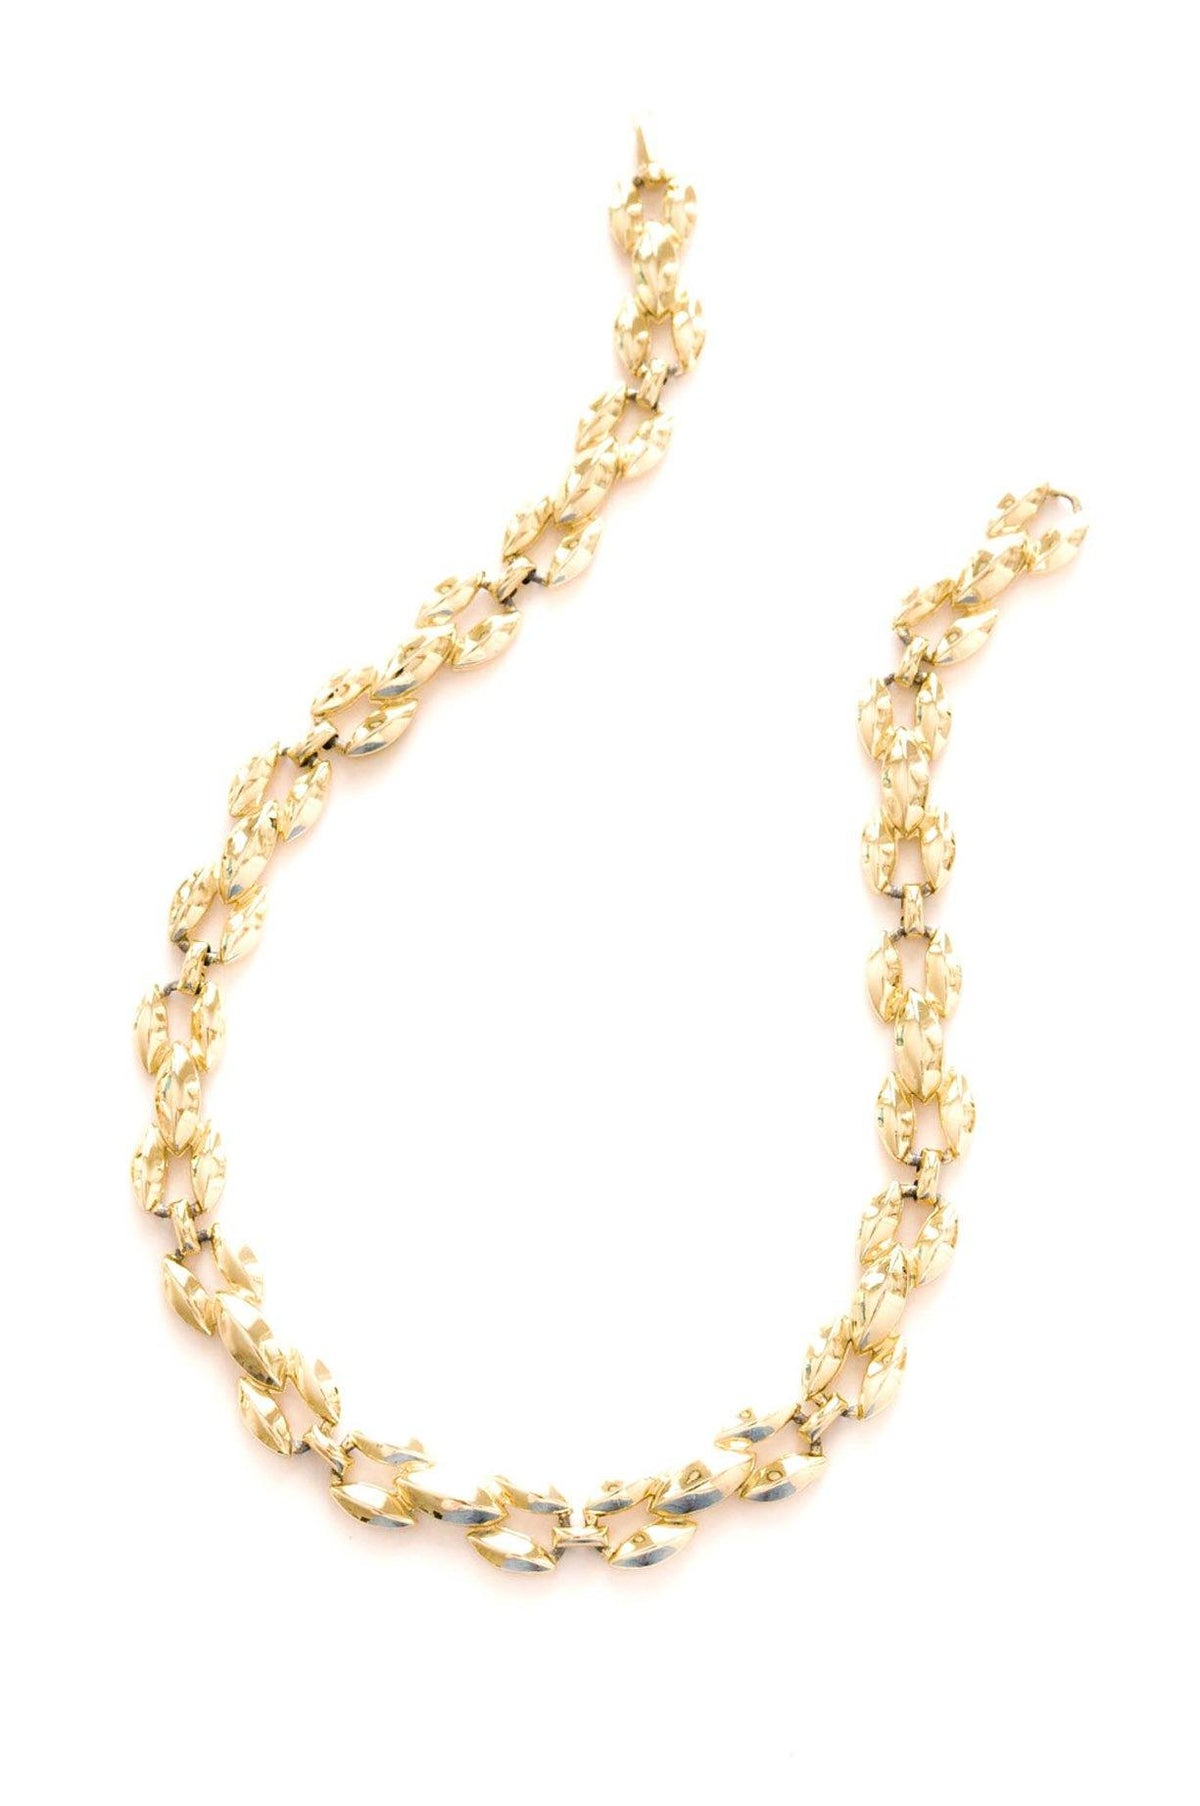 Vintage Gold Oval Chain Necklace from Sweet & Spark